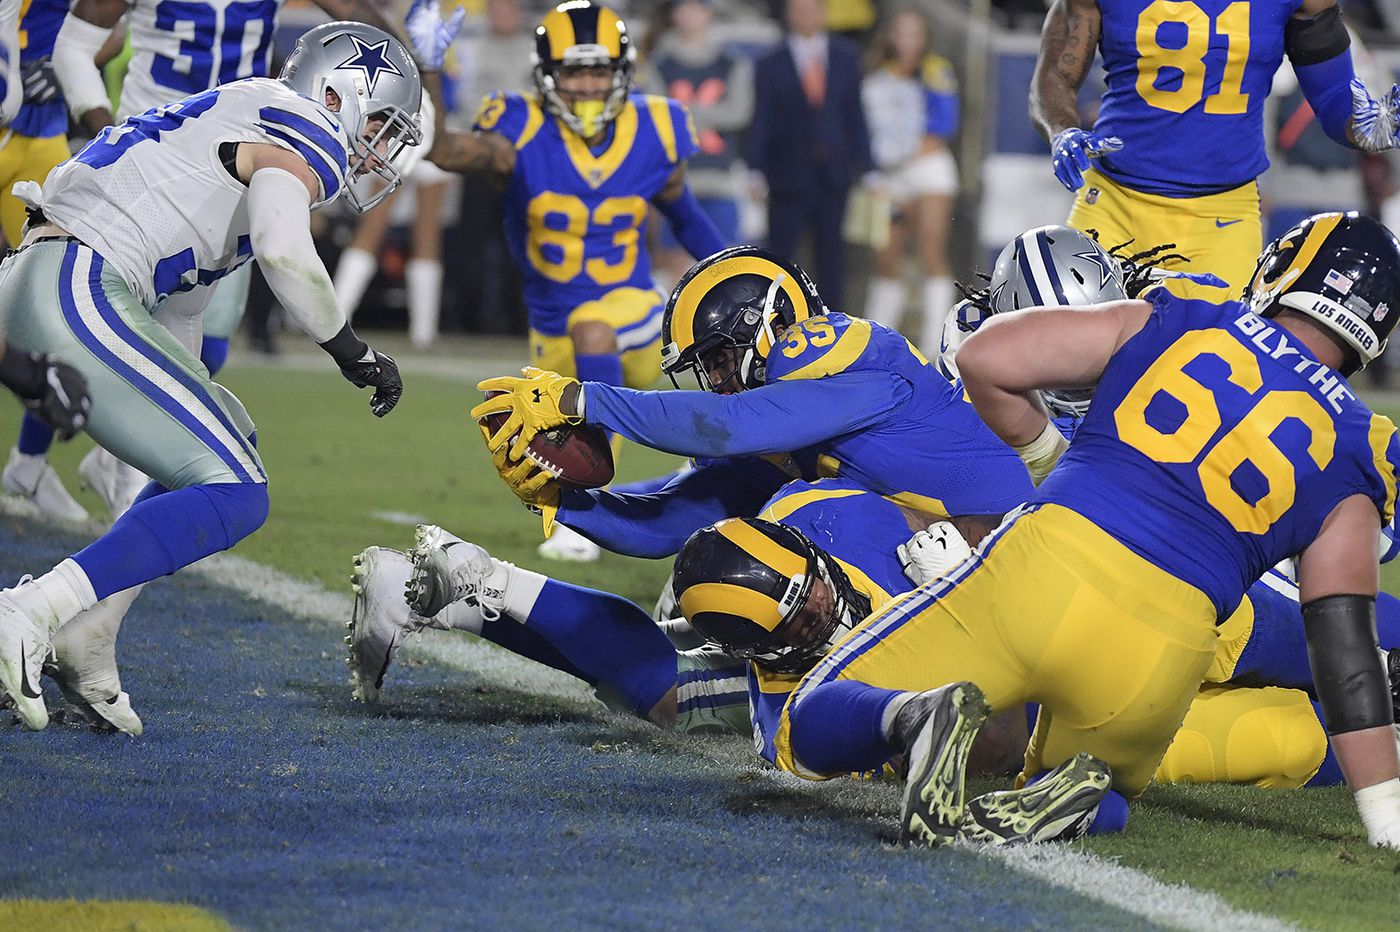 Rams beat Cowboys, may host Eagles for NFC championship in Los Angeles next Sunday